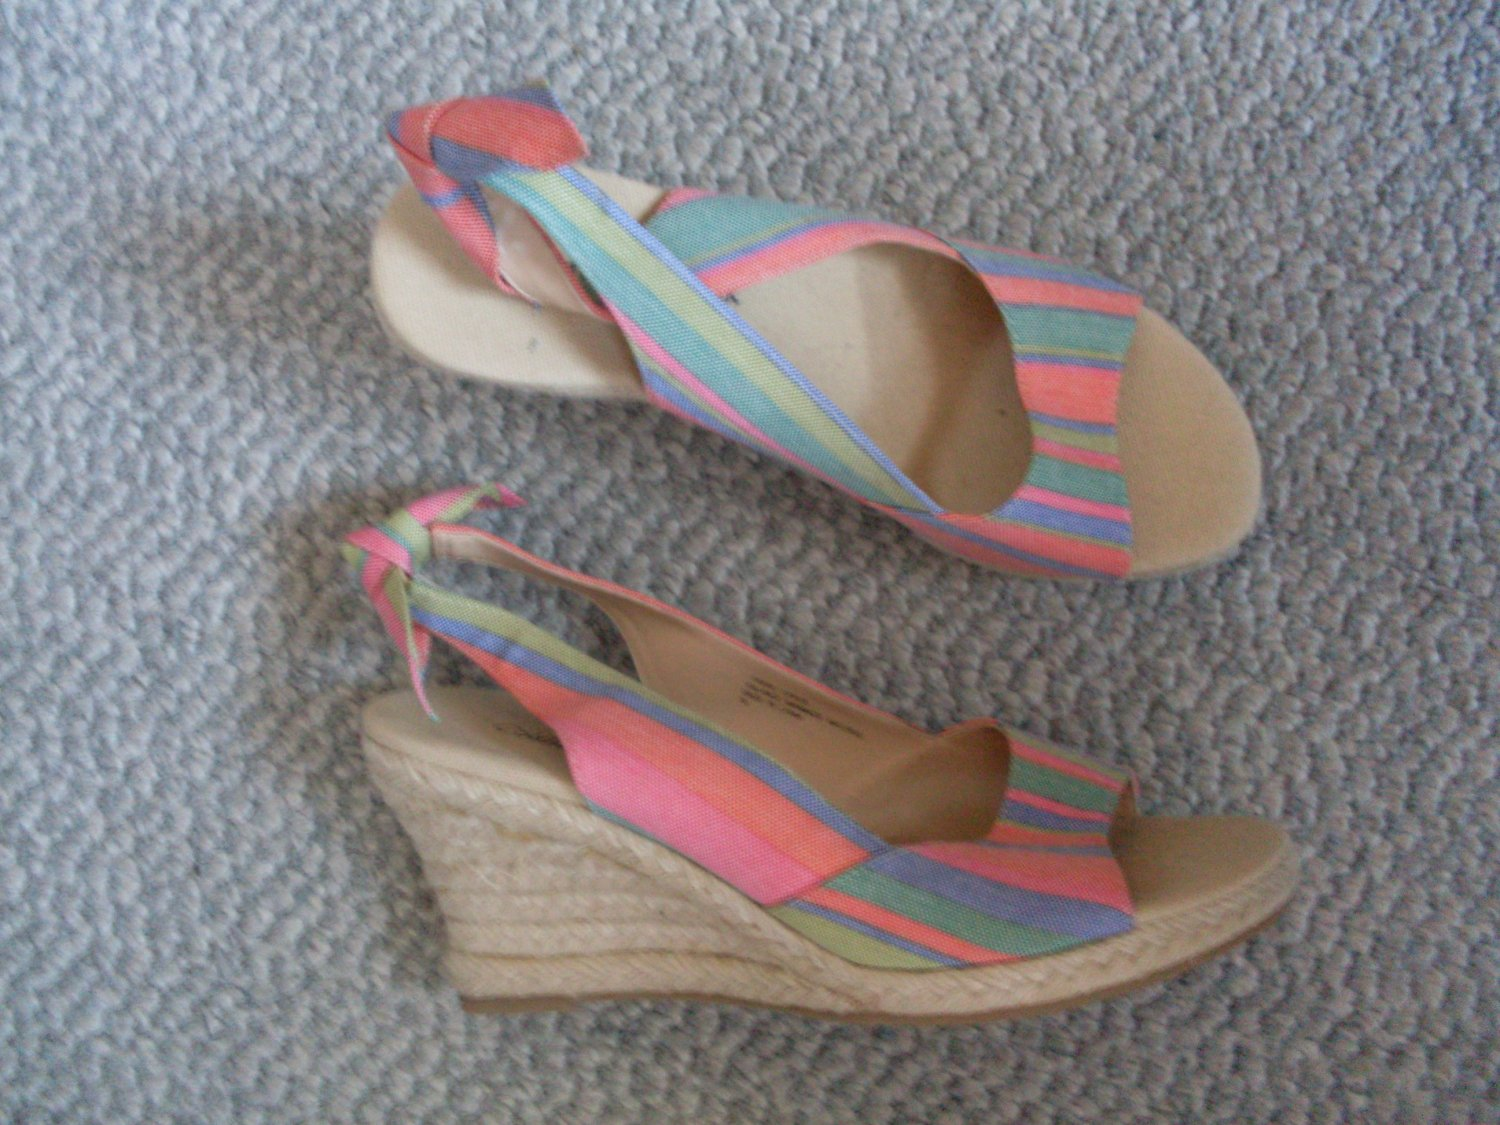 NEW Women Size 7 Coldwater Creek Wedges Sandals